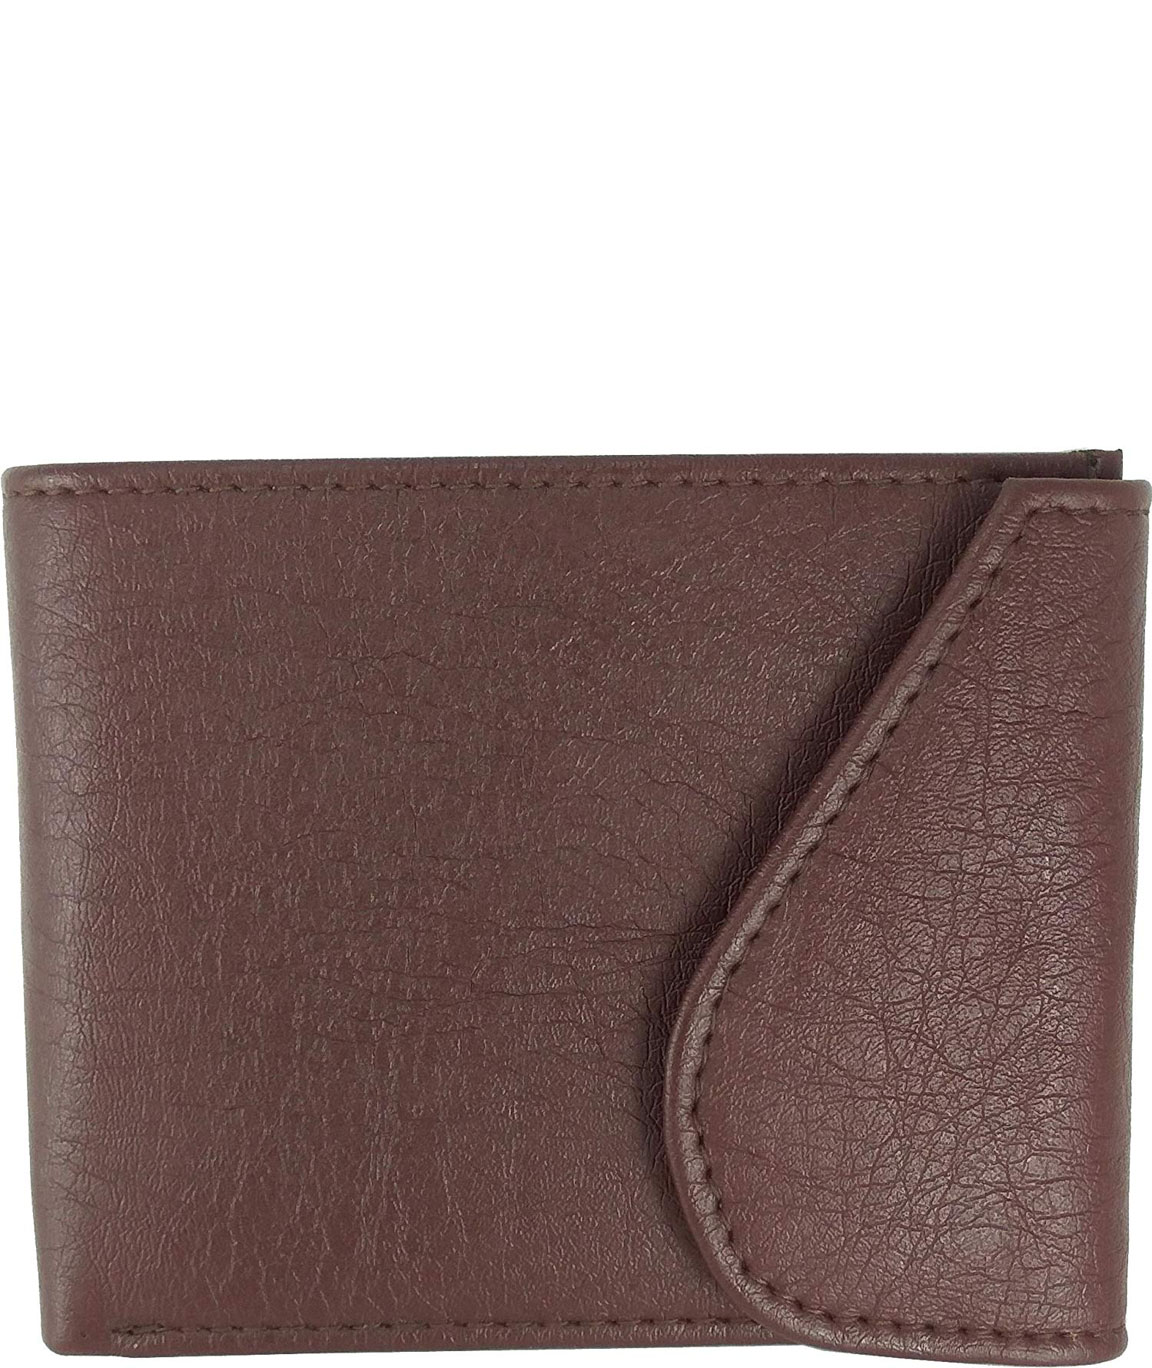 Alfami Brown Wallet for Men with Flap Cover